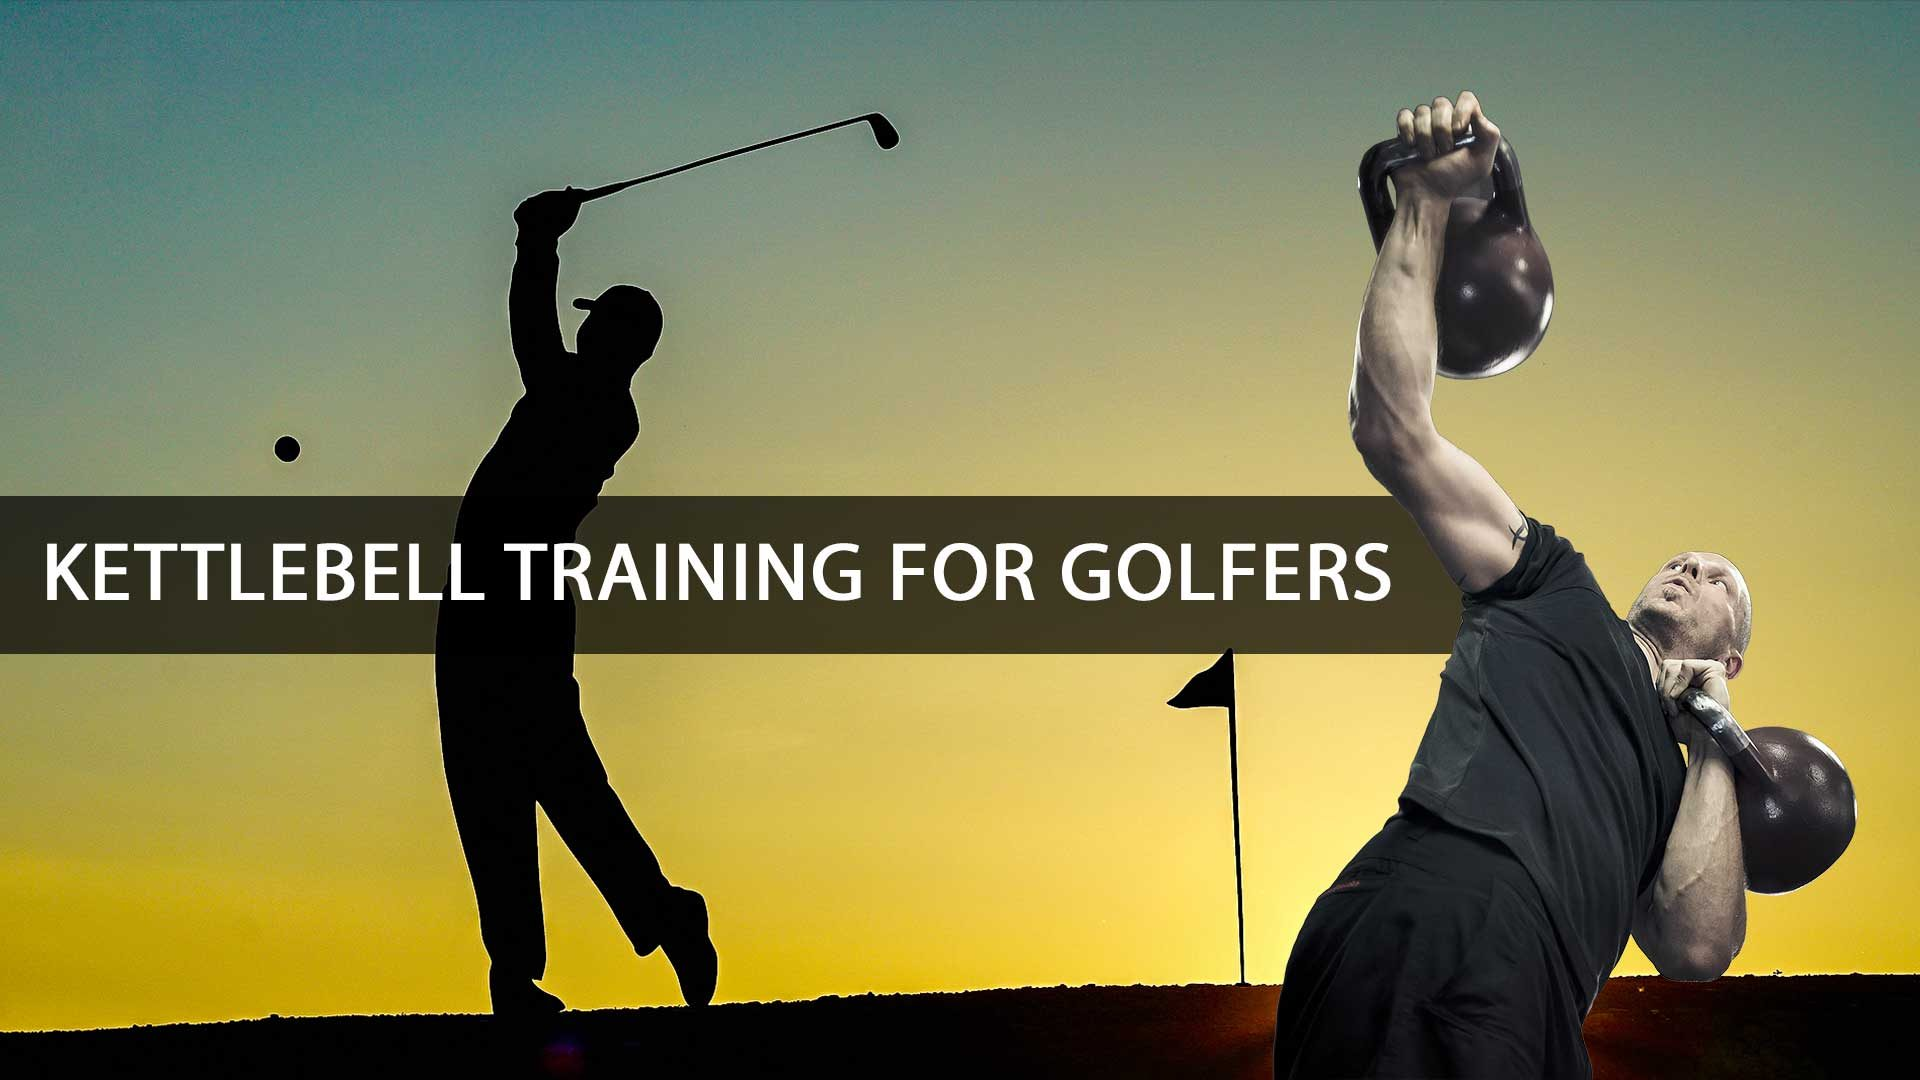 Kettlebell training for golfers